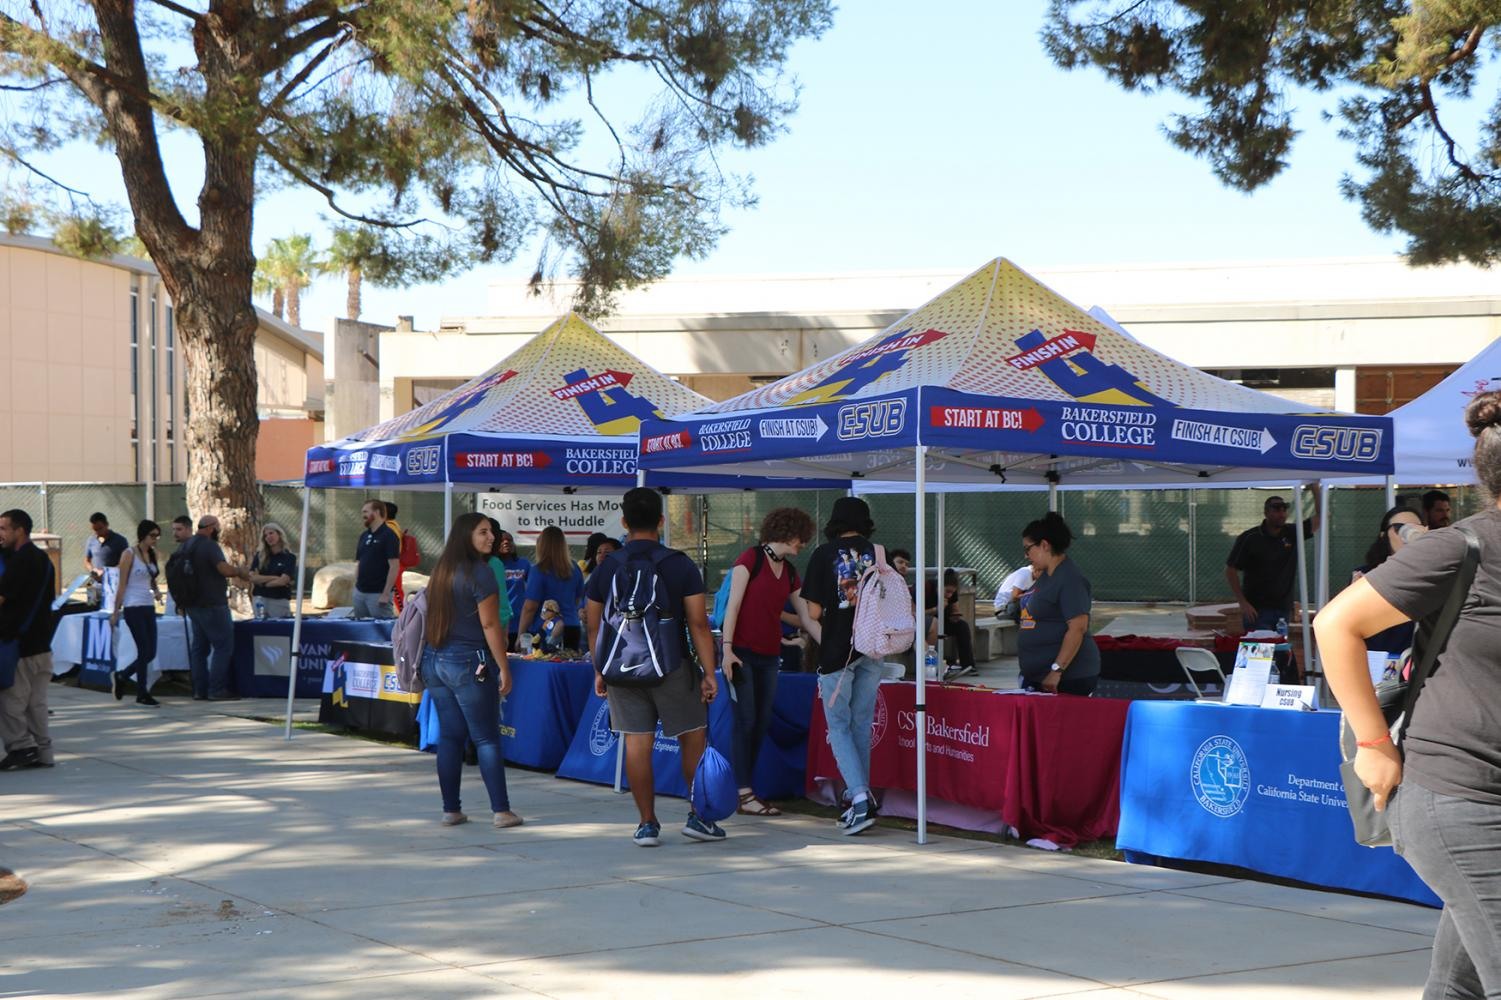 Bakersfield College students speaking with representatives from various universities including CSUB at the huddle on Sep.9.